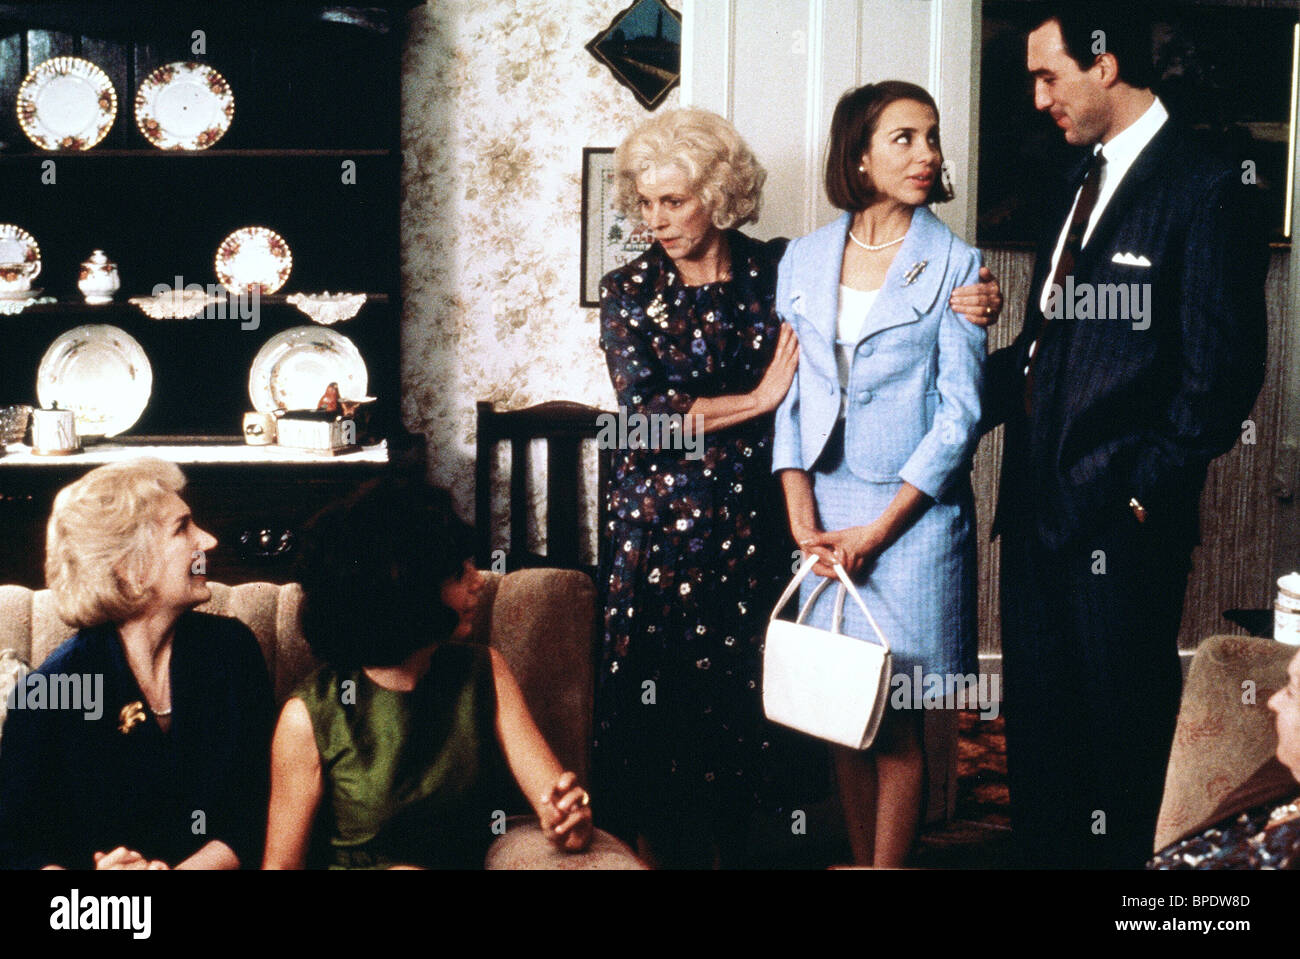 BILLIE WHITELAW, KATE HARDIE, MARTIN KEMP, THE KRAYS, 1990 - Stock Image